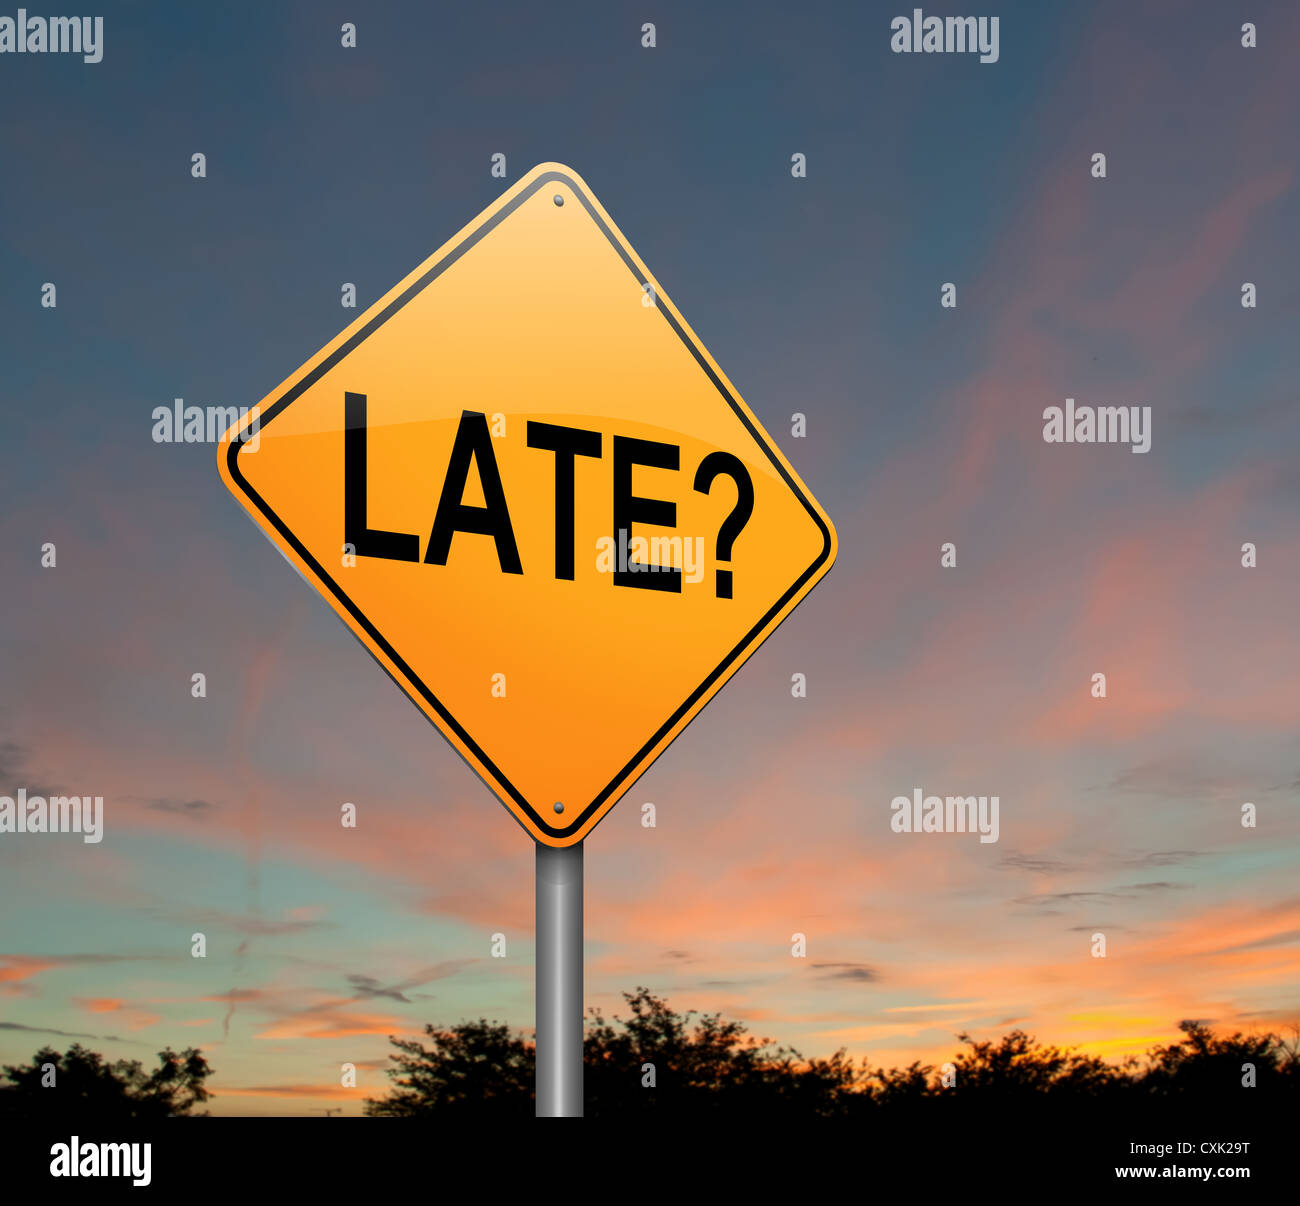 Late. Stock Photo